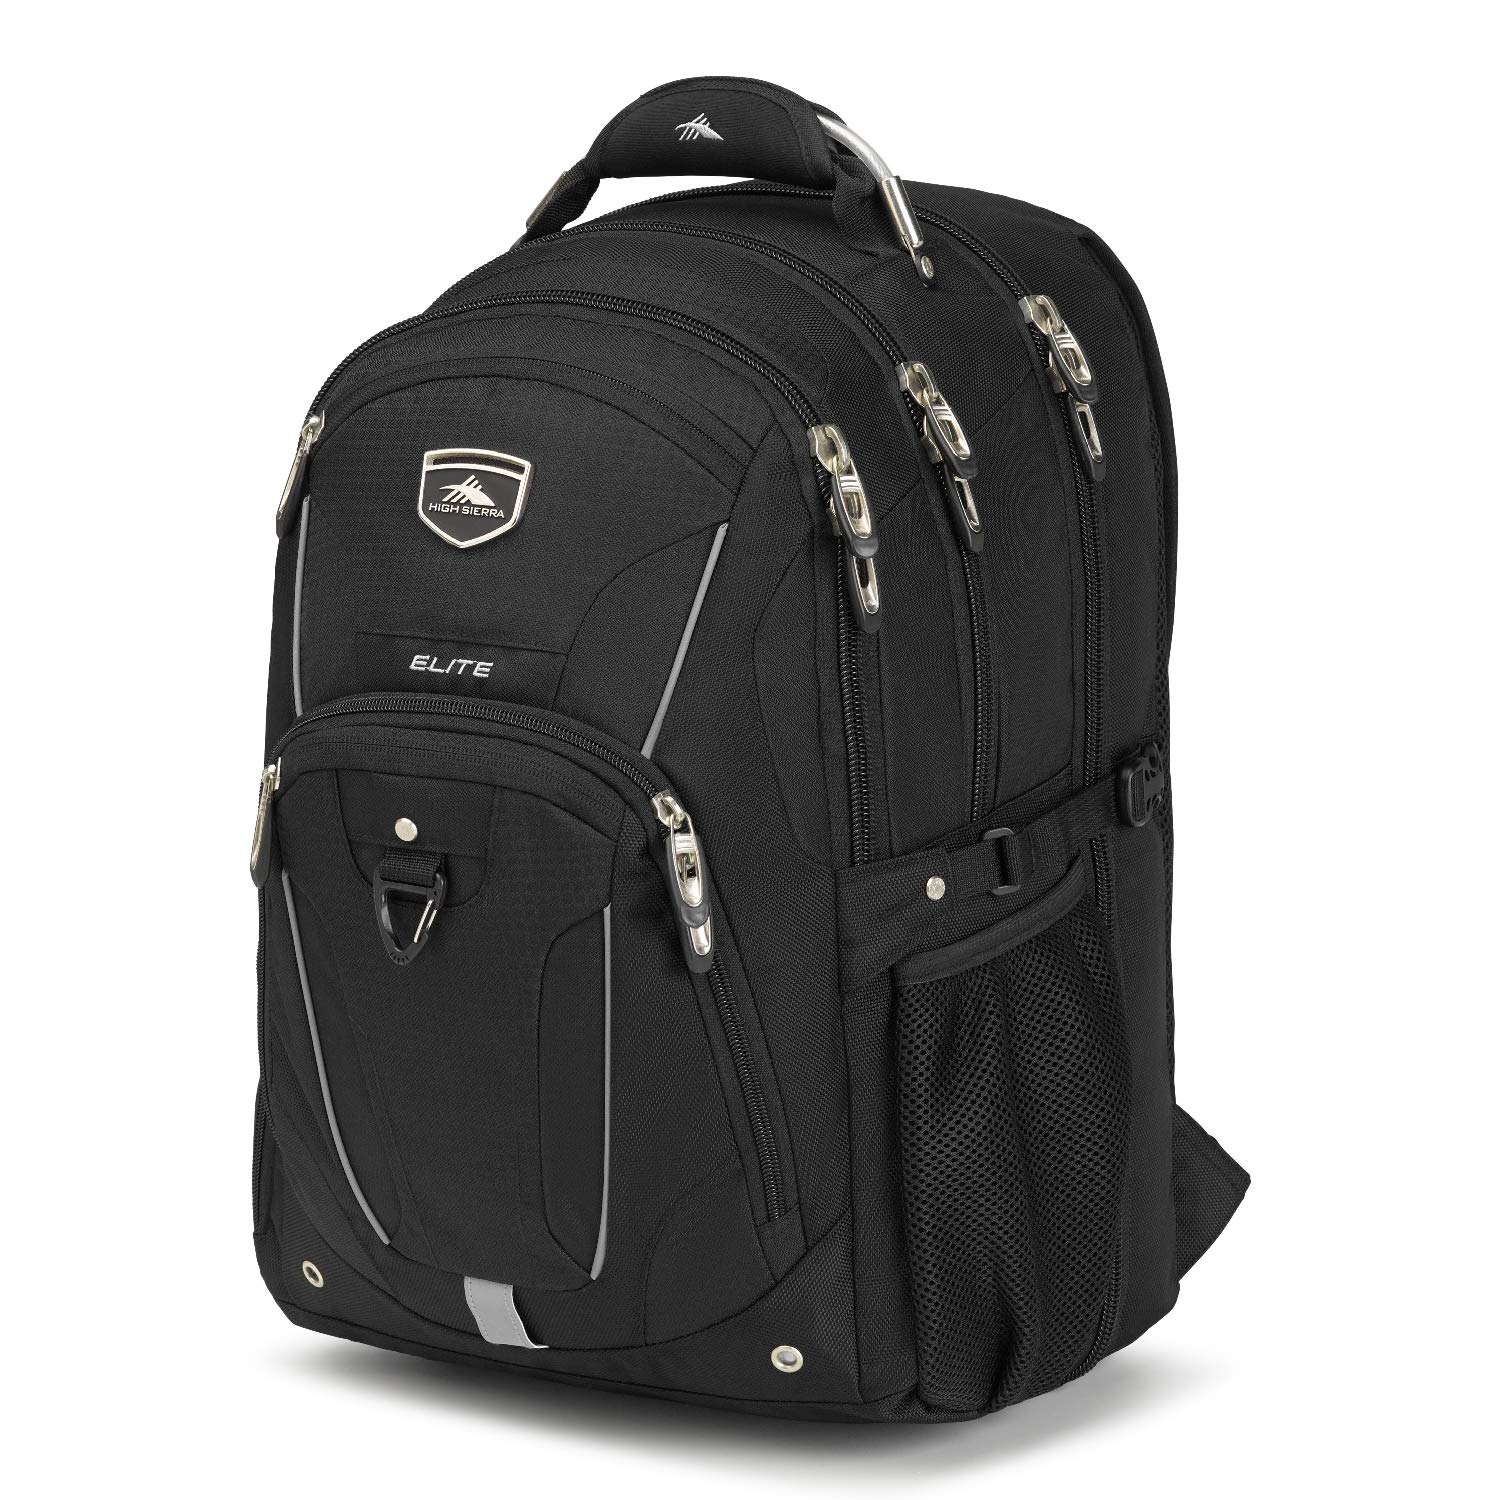 High Sierra Elite TSA-Friendly Laptop Backpack – Ideal for High School and College Students – Fits Most 17-inch Laptop Models, Black